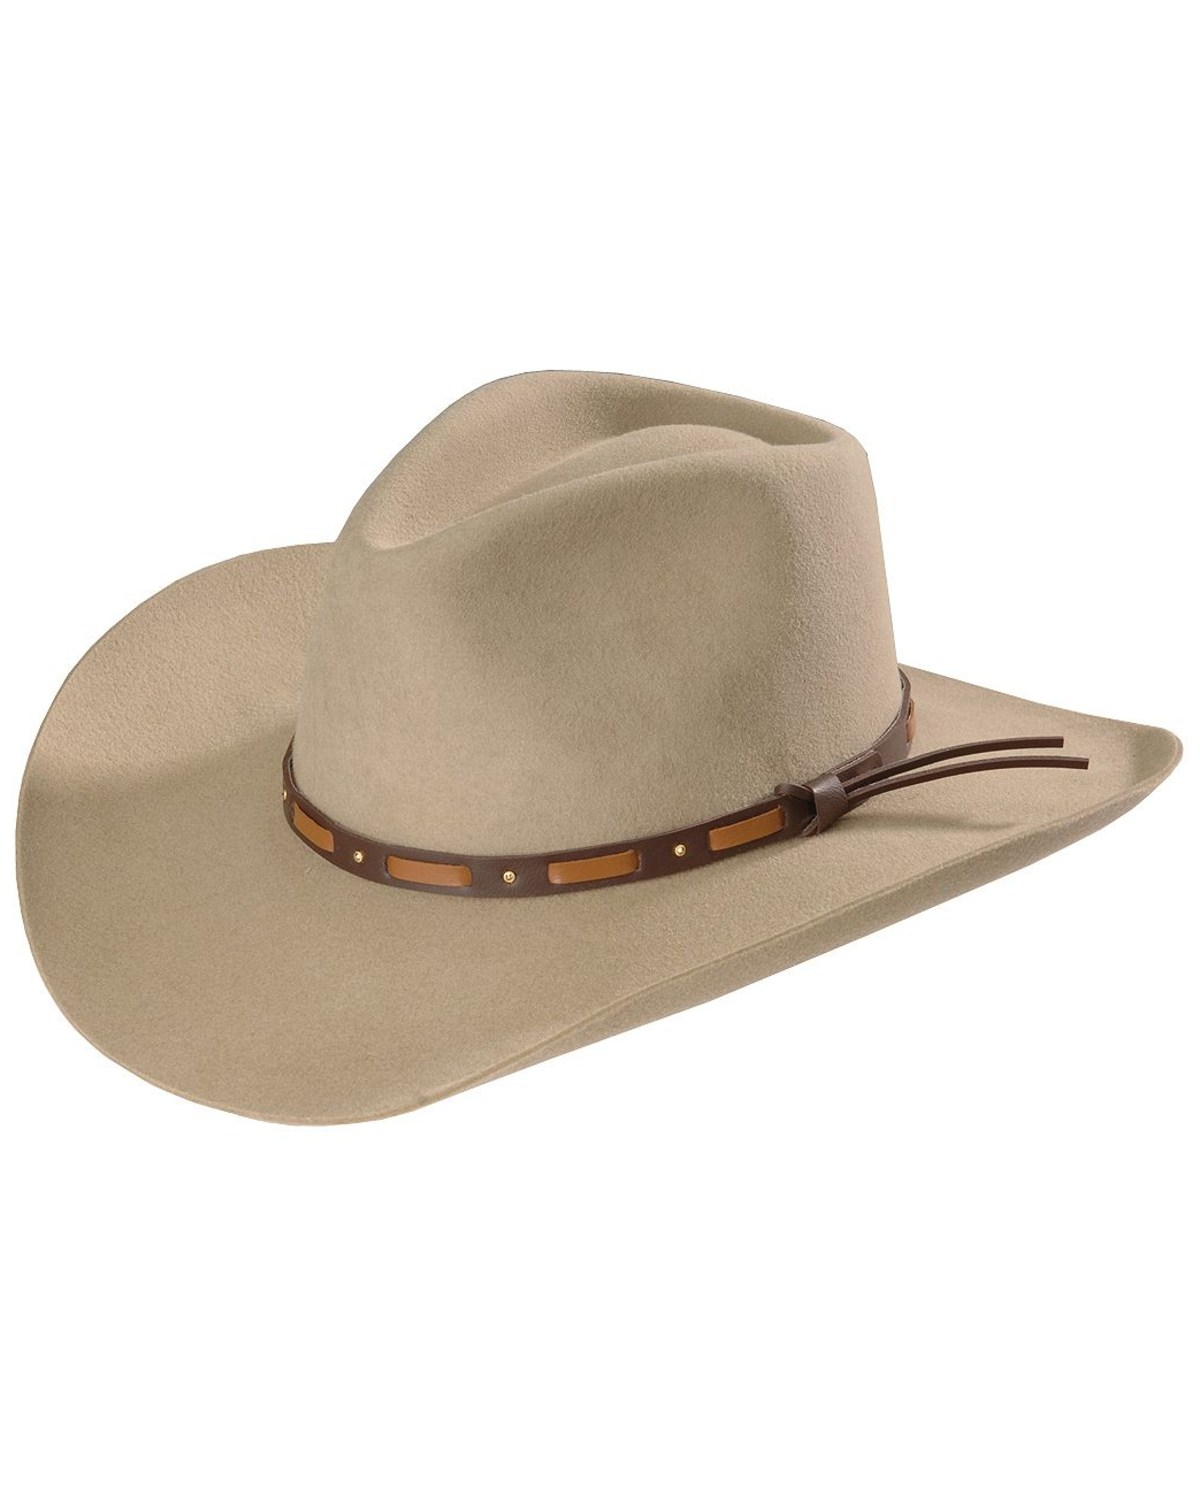 Stetson Hutchins 2XX Wool Felt Hat | Boot Barn